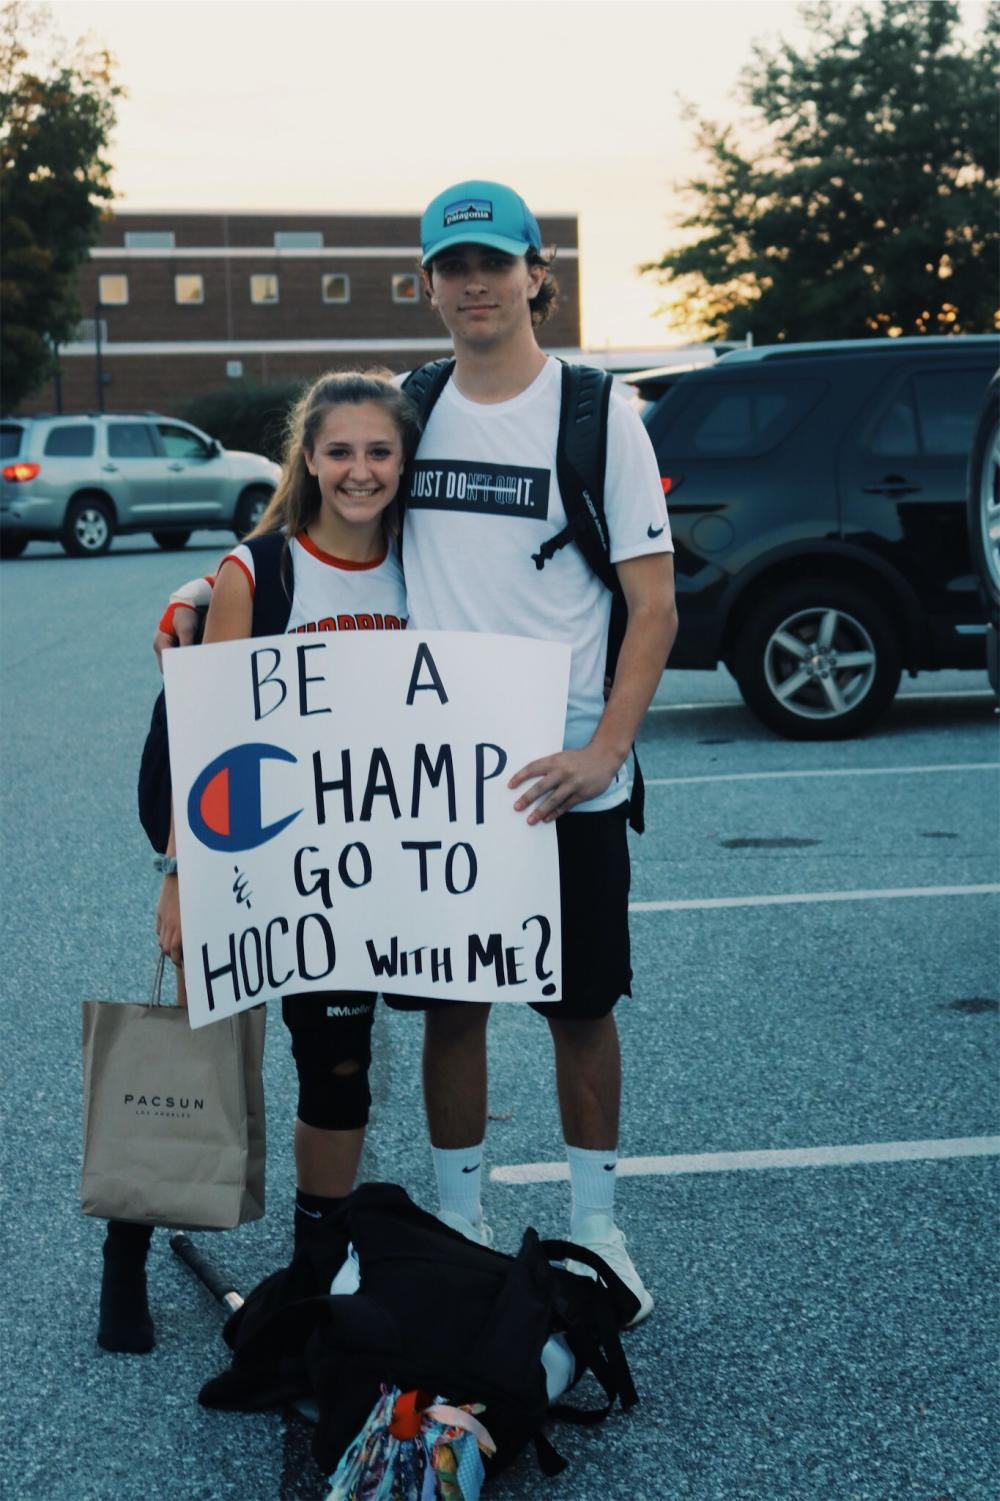 Freshman Kylie Vantassel was asked to homecoming by junior Cole Weigard with a Champion theme.